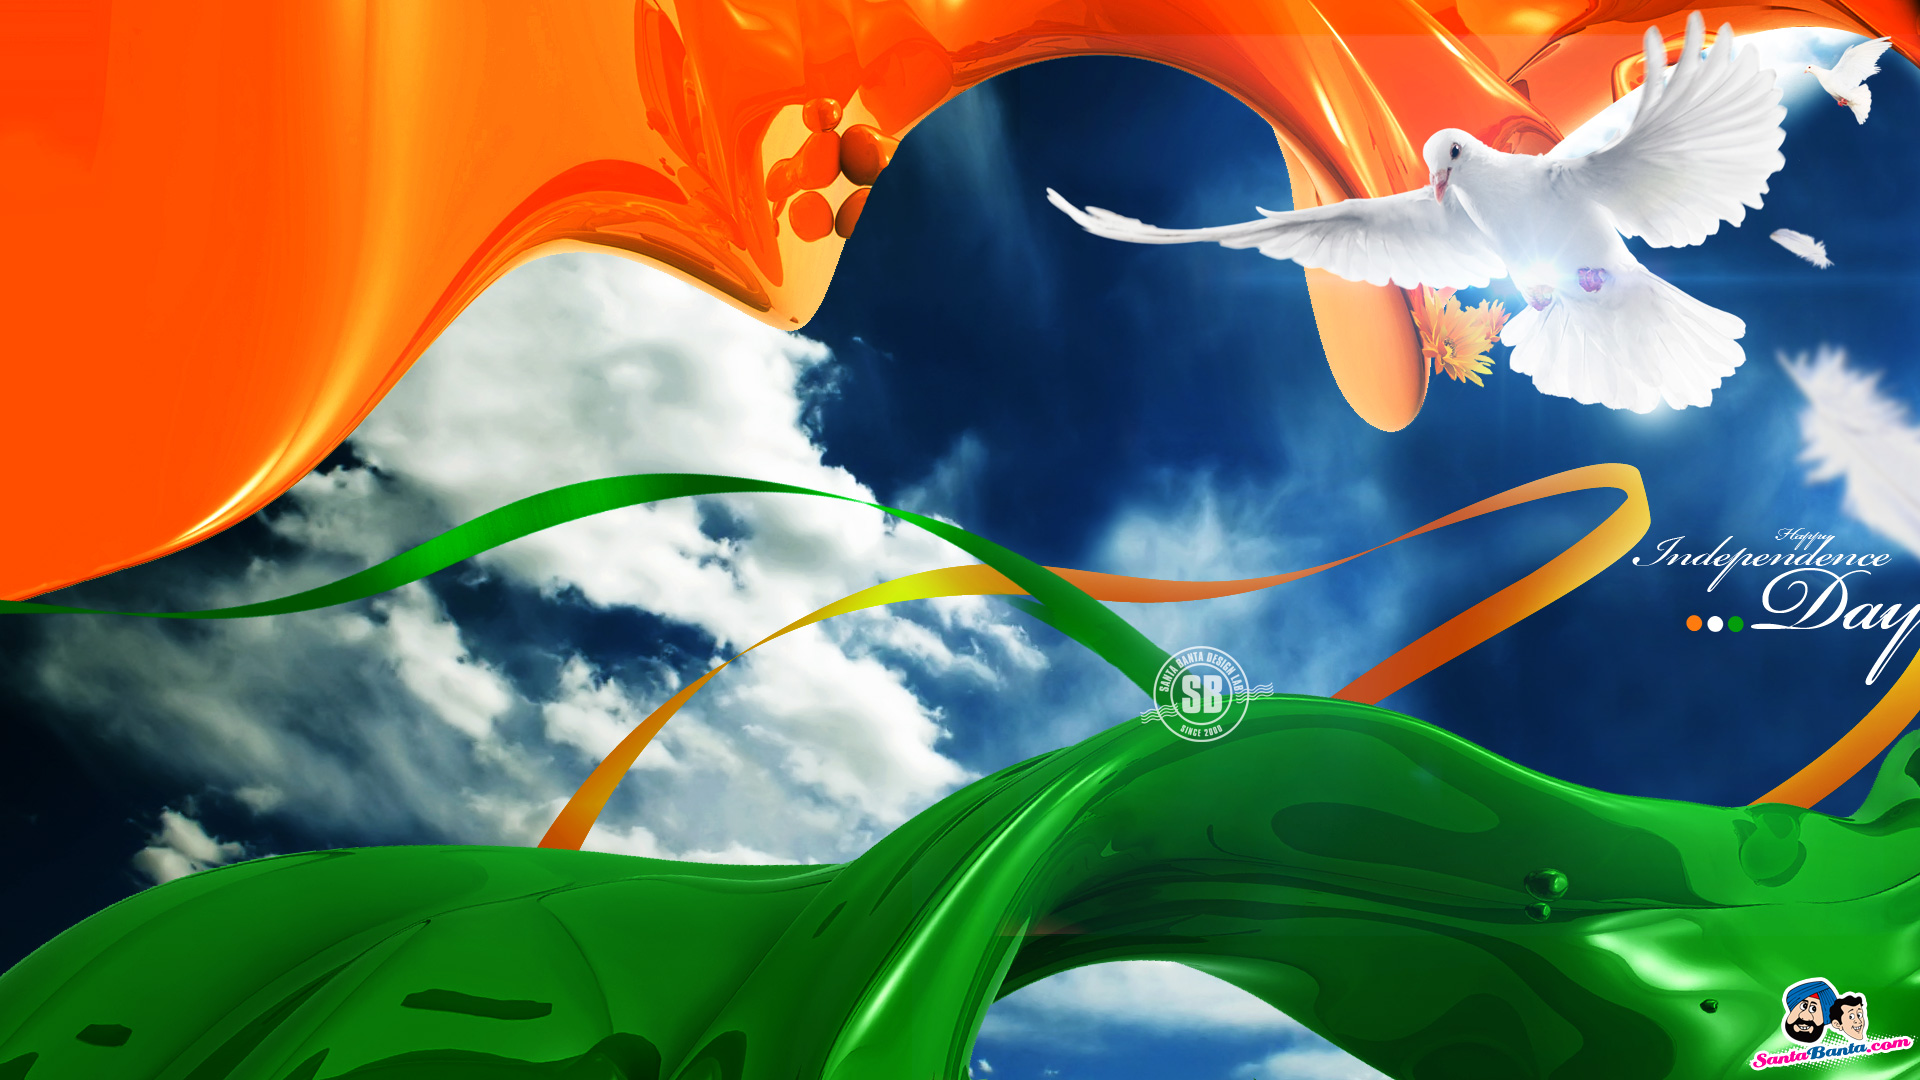 Independence Day Wallpaper   15 August 2015 Independence Day Wallpaper 1920x1080